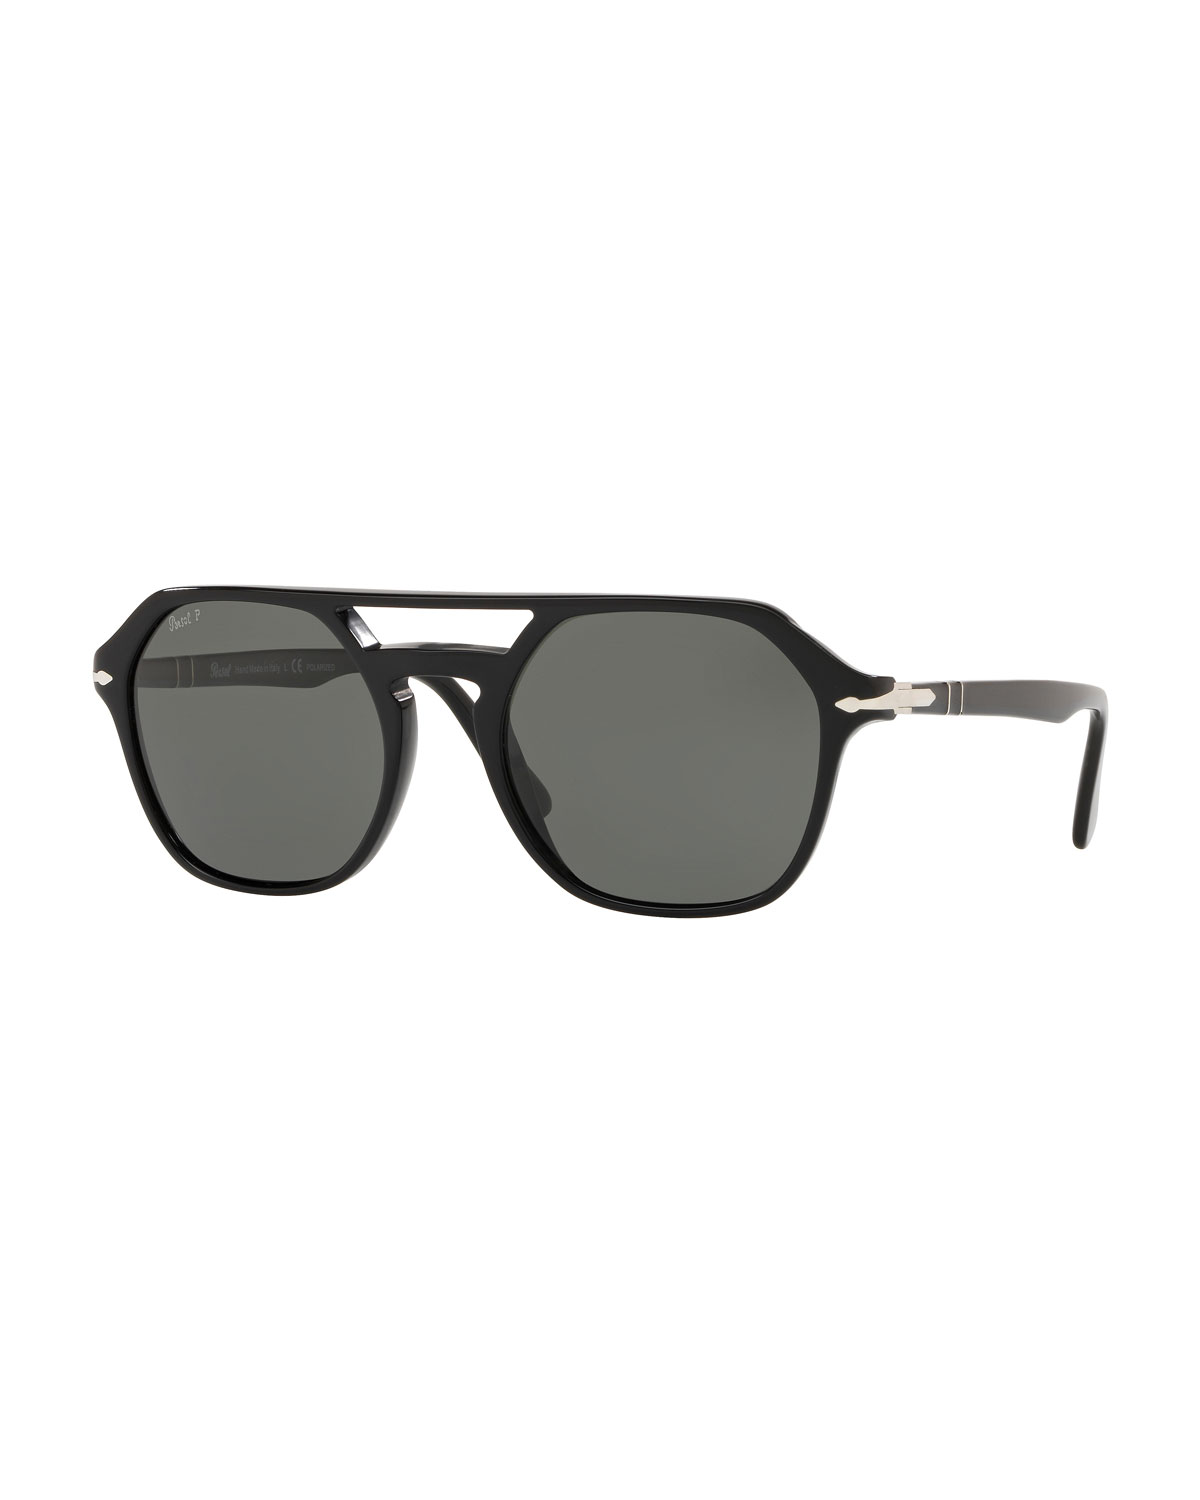 4cc21c007a Persol Men s PO3206S Acetate Keyhole Pilot Sunglasses - Polarized ...